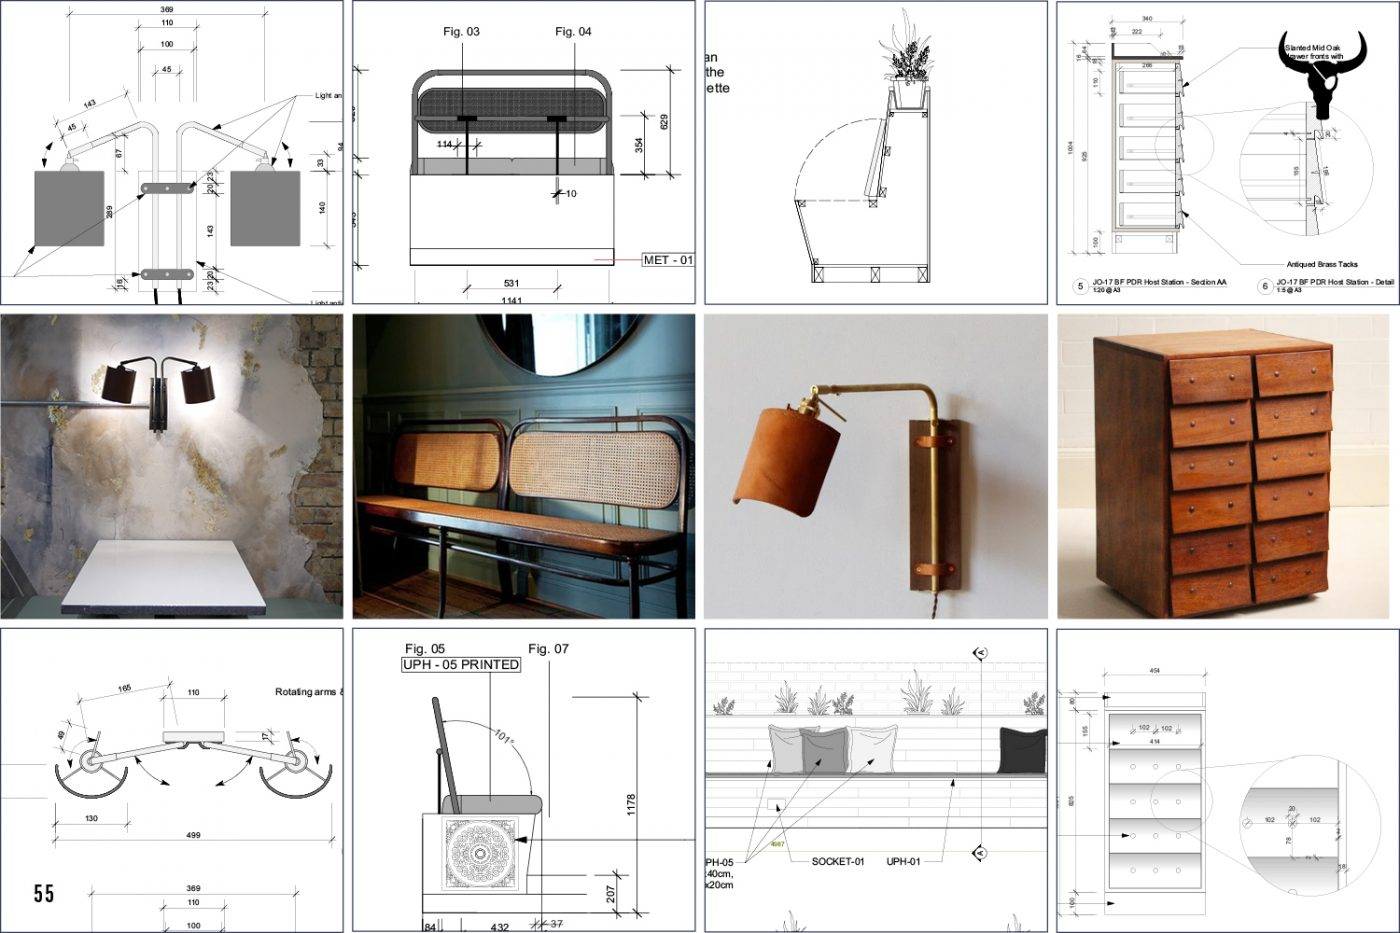 Incroyable Kricket Soho London Cad Detailing Interior Design